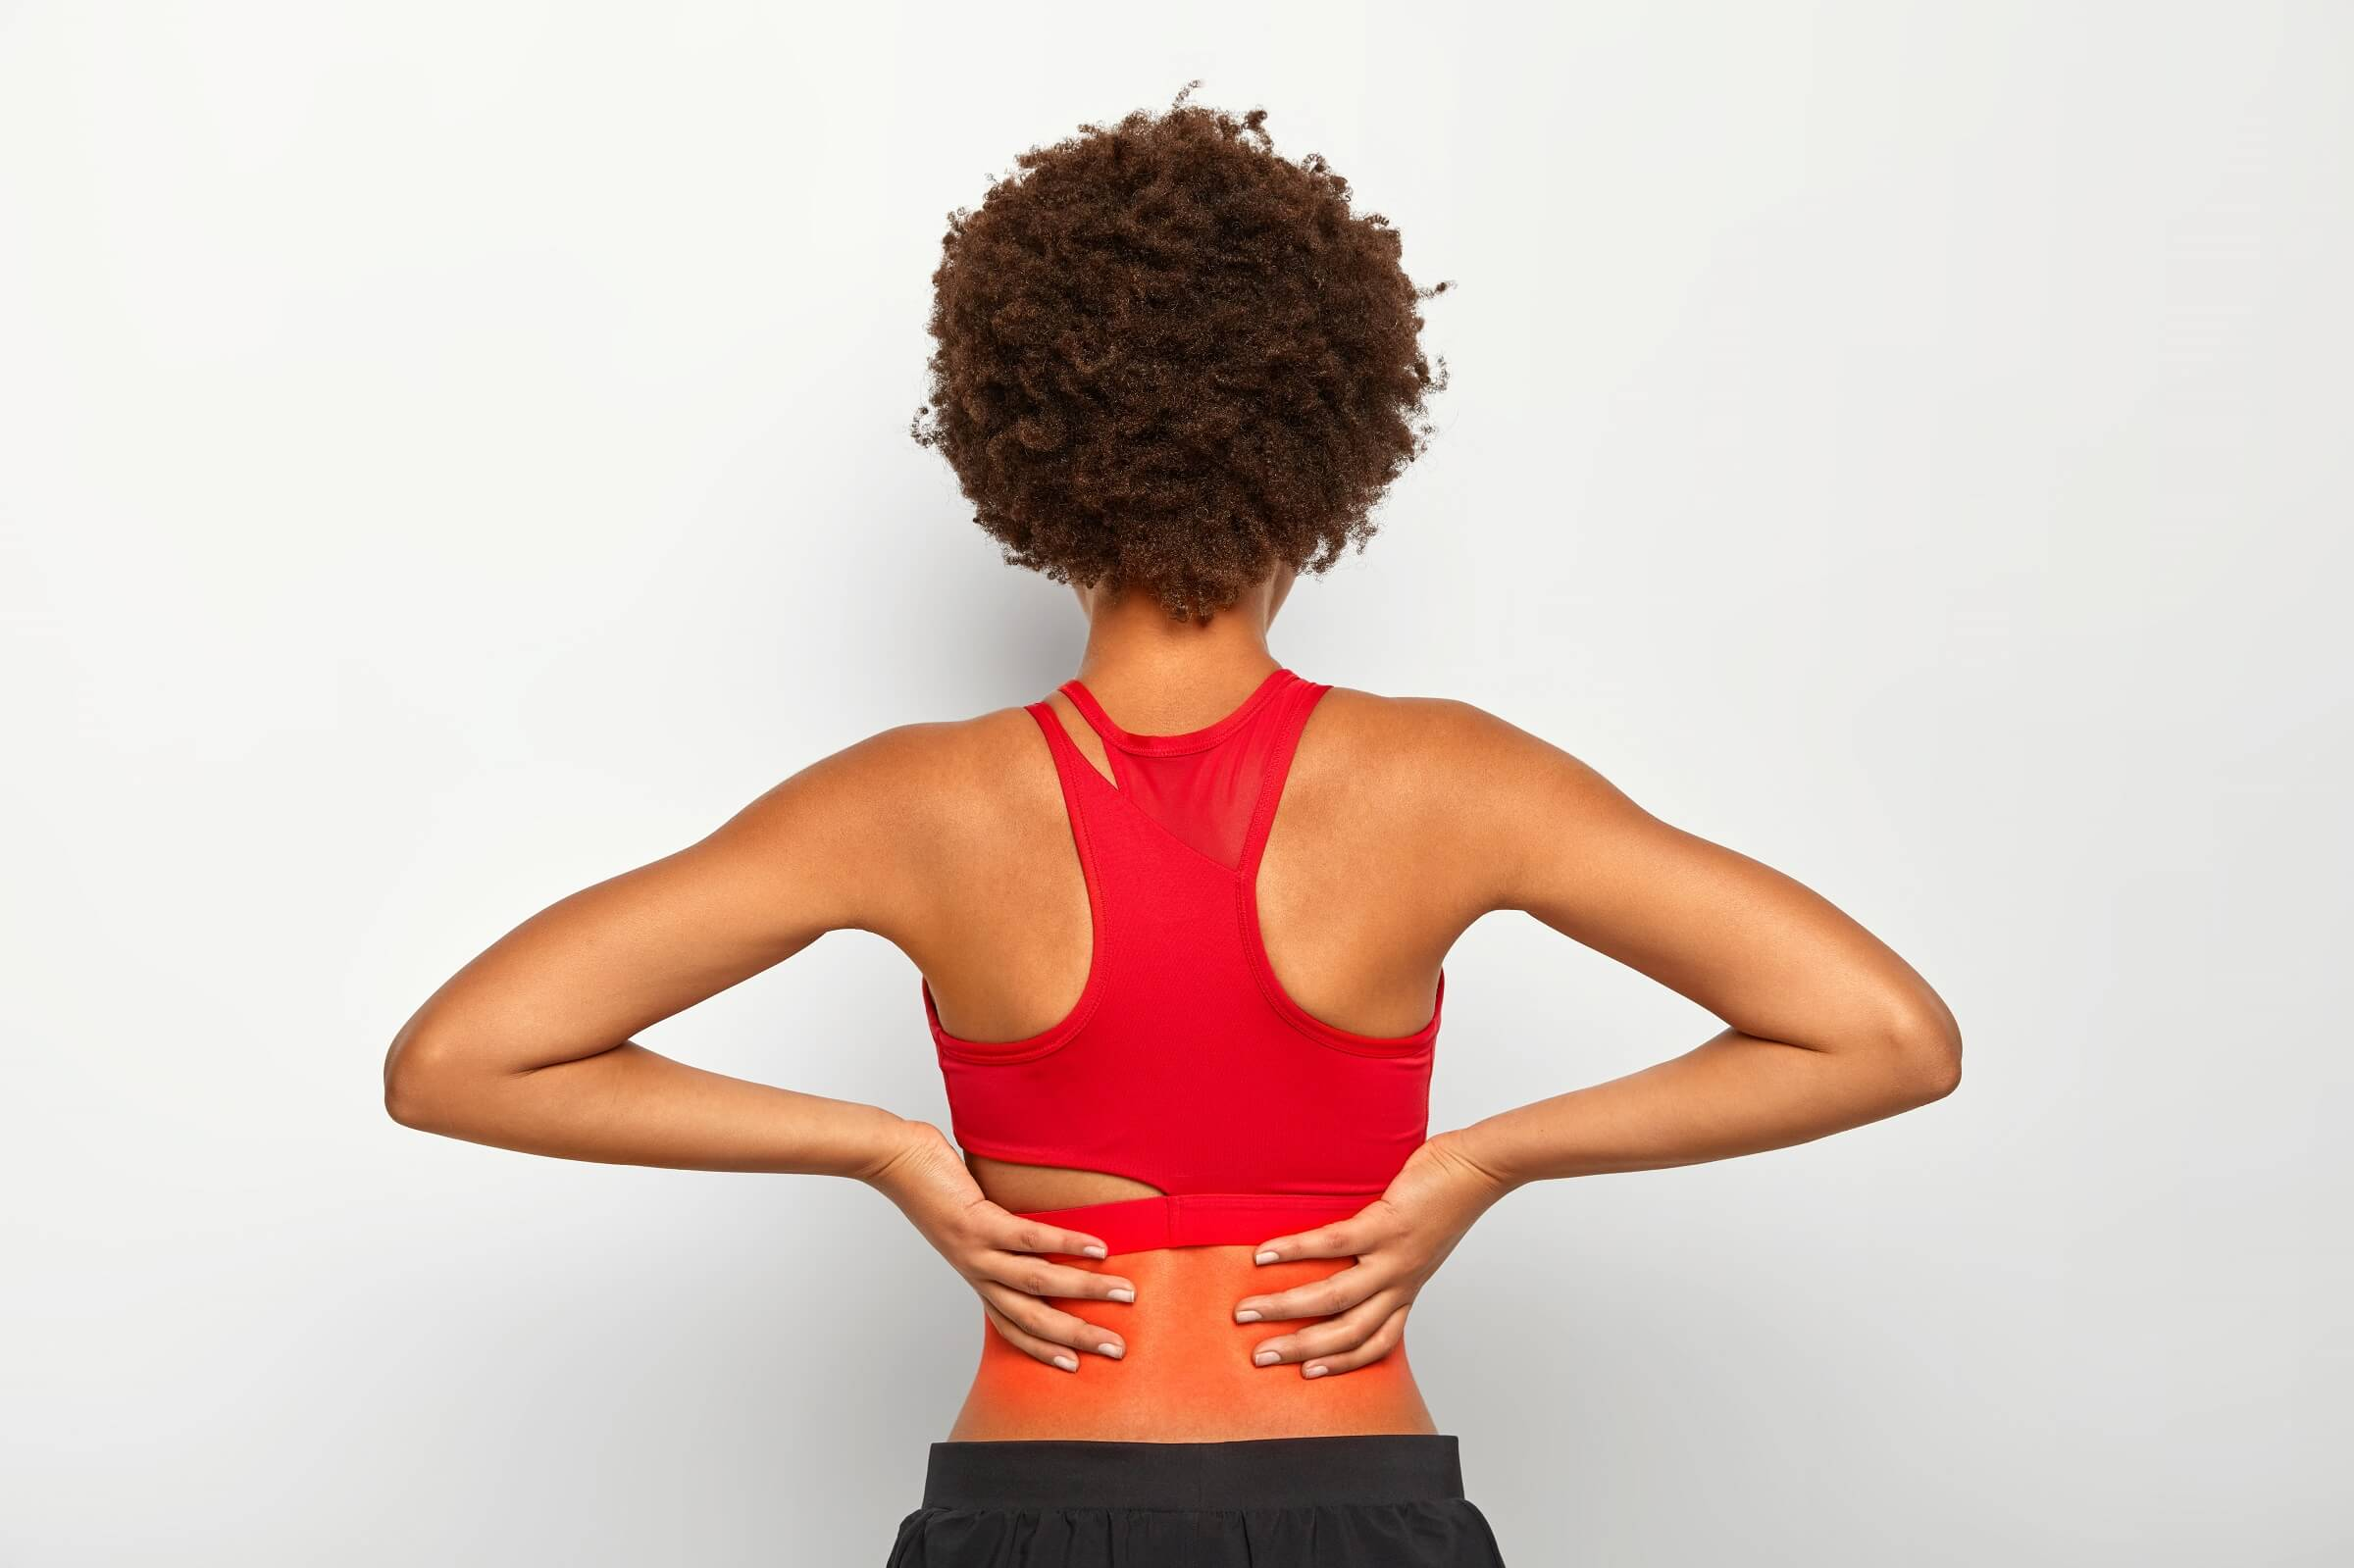 Back Exercises Without Weights and With Weights to Make Back Strong